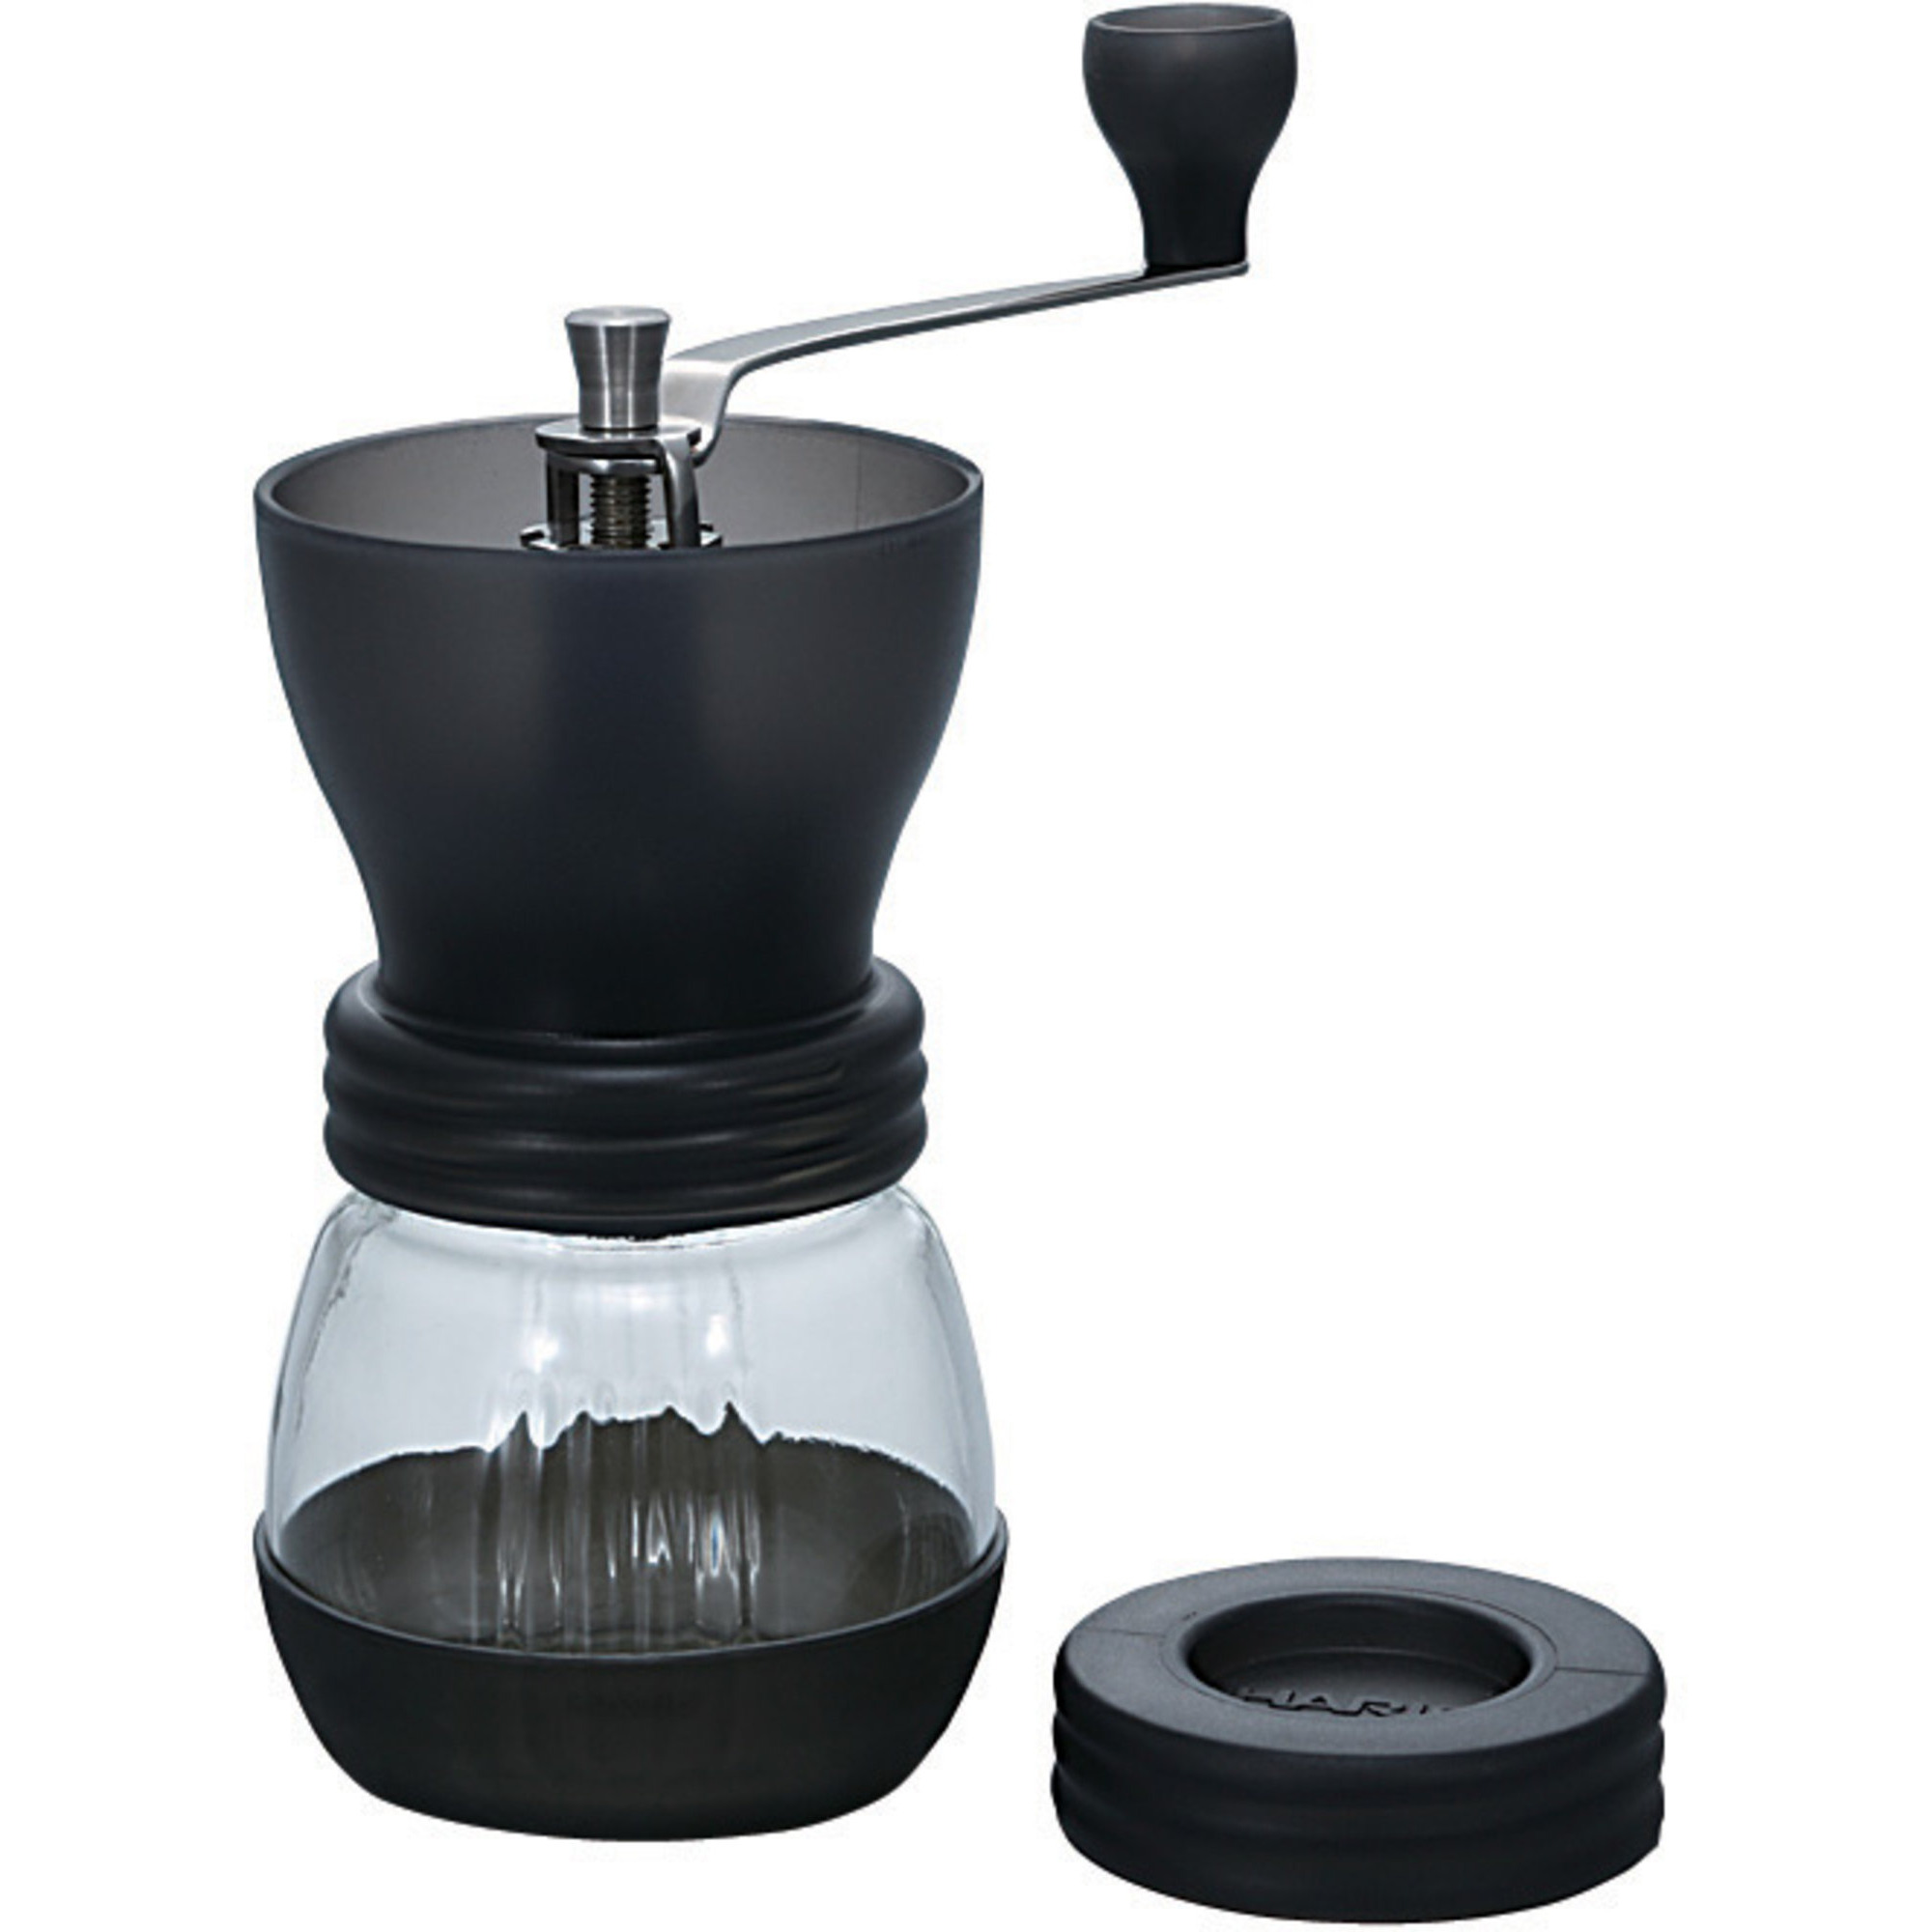 Hario Coffee Mill keramik Skerton